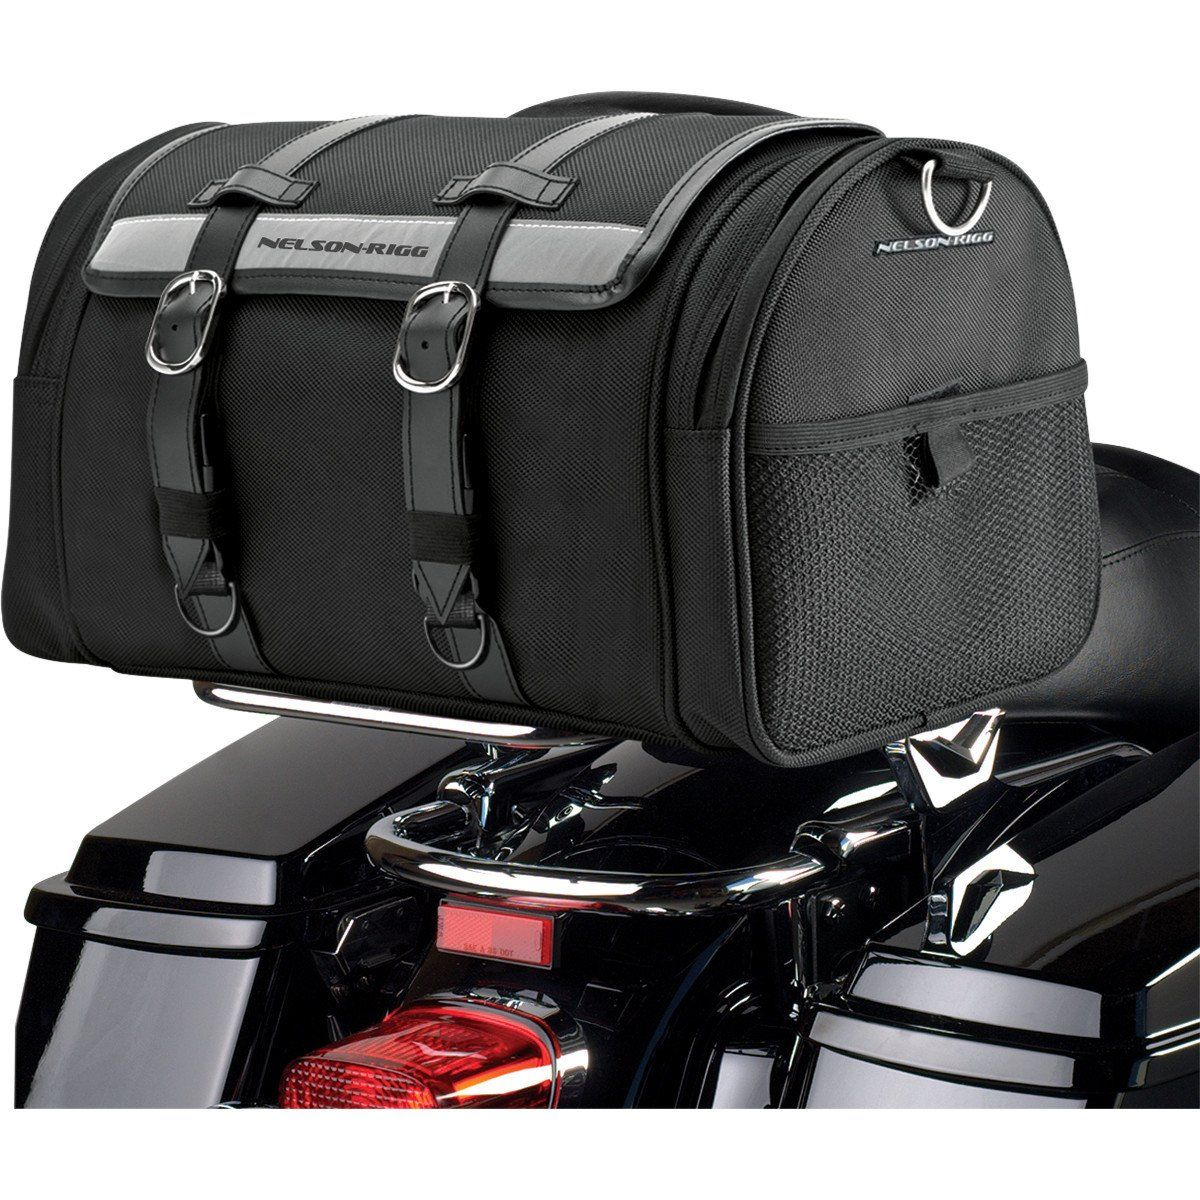 Motorcycle Luggage Rack Bag Magnificent Riggpak Ctb 1020 Deluxe Barrel Bag  Barrel Bag And Products Design Ideas